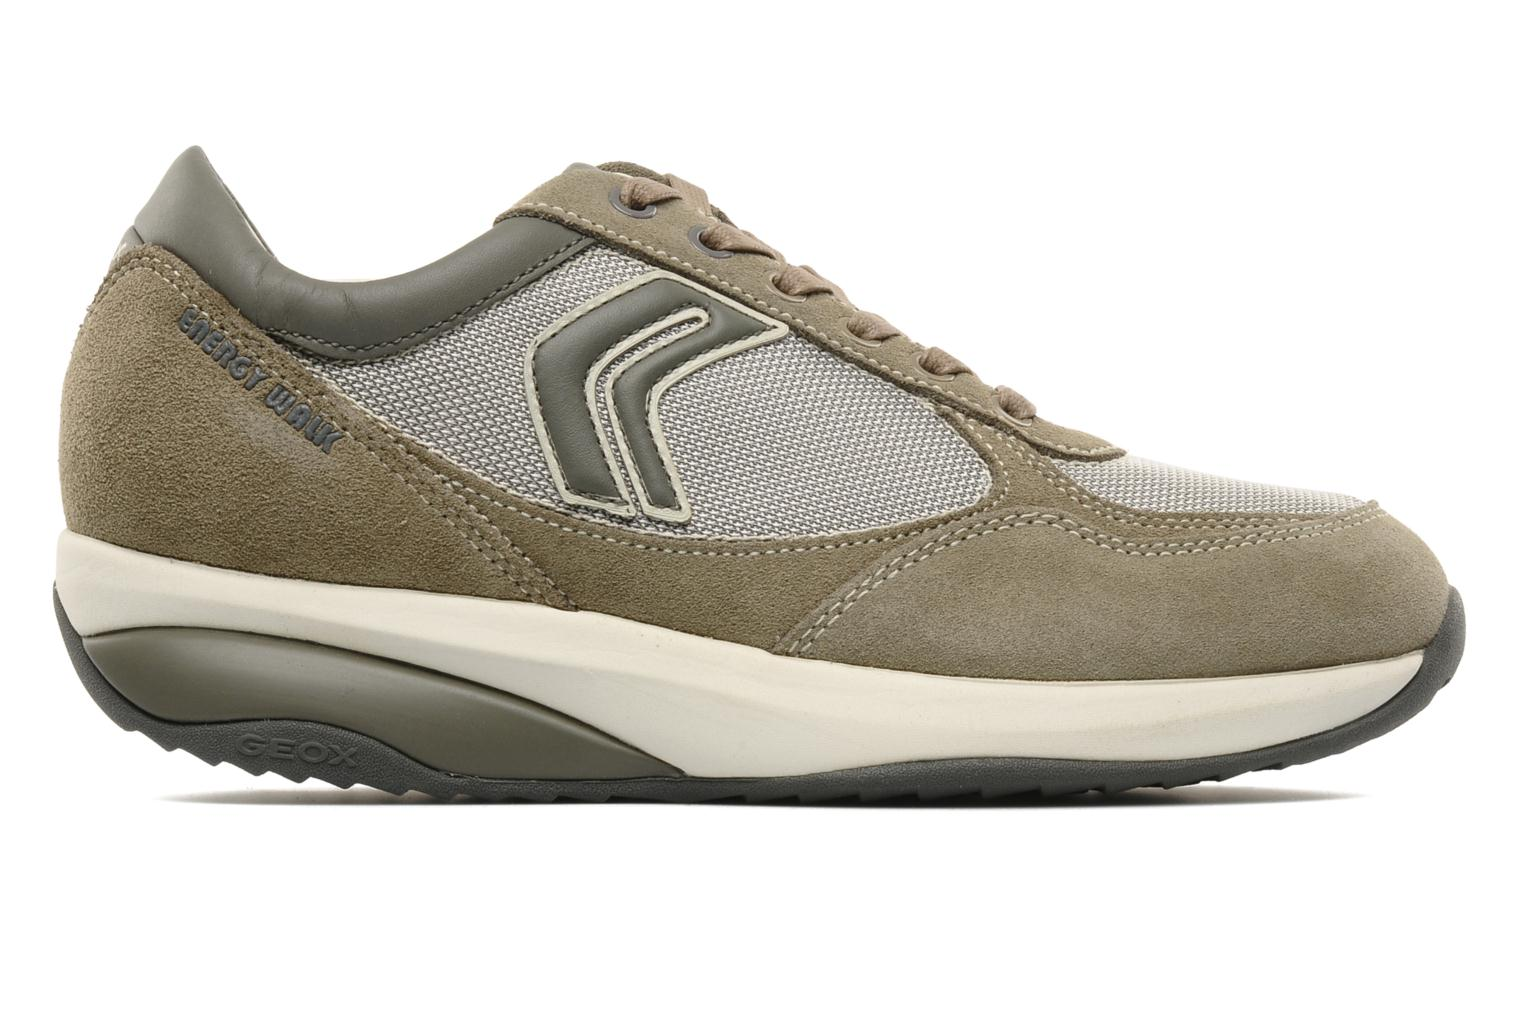 U energy walk b BEIGE/GREY